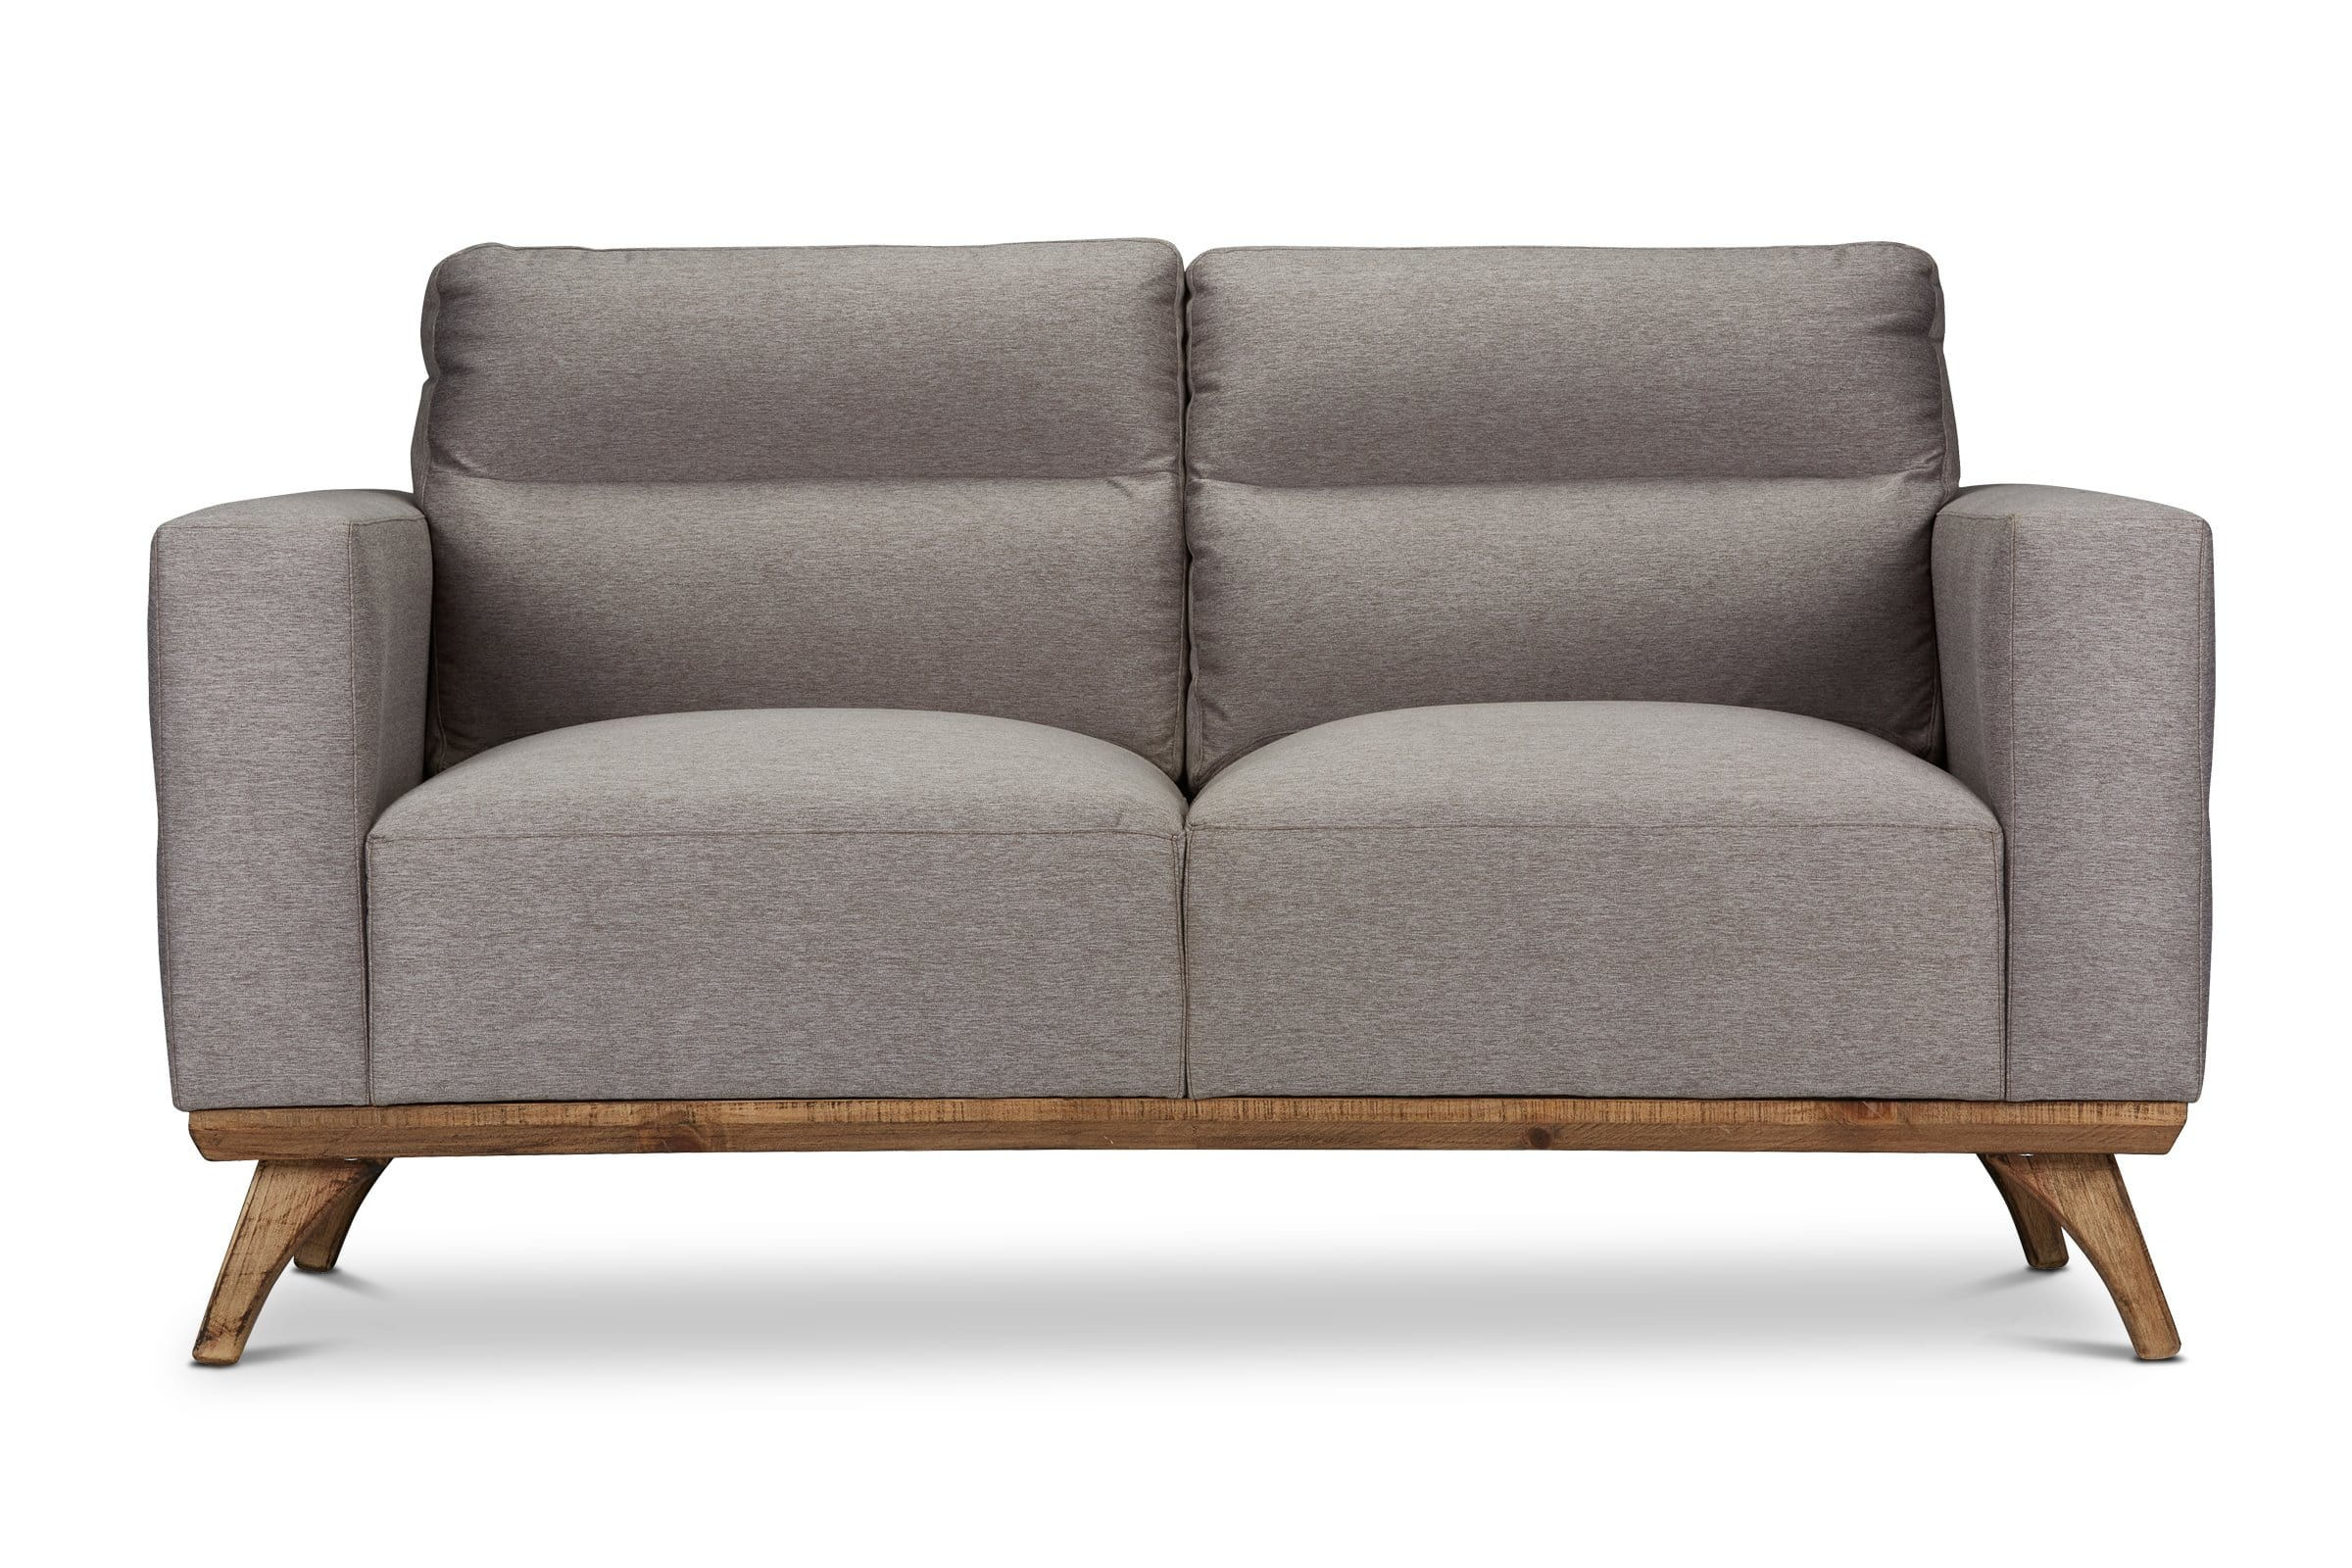 Embry Loveseat - Grey - Modern Furniture - Sold by Apt2B - Grey - Small Space Modern Couch Made in the USA - Sold by Apt2B